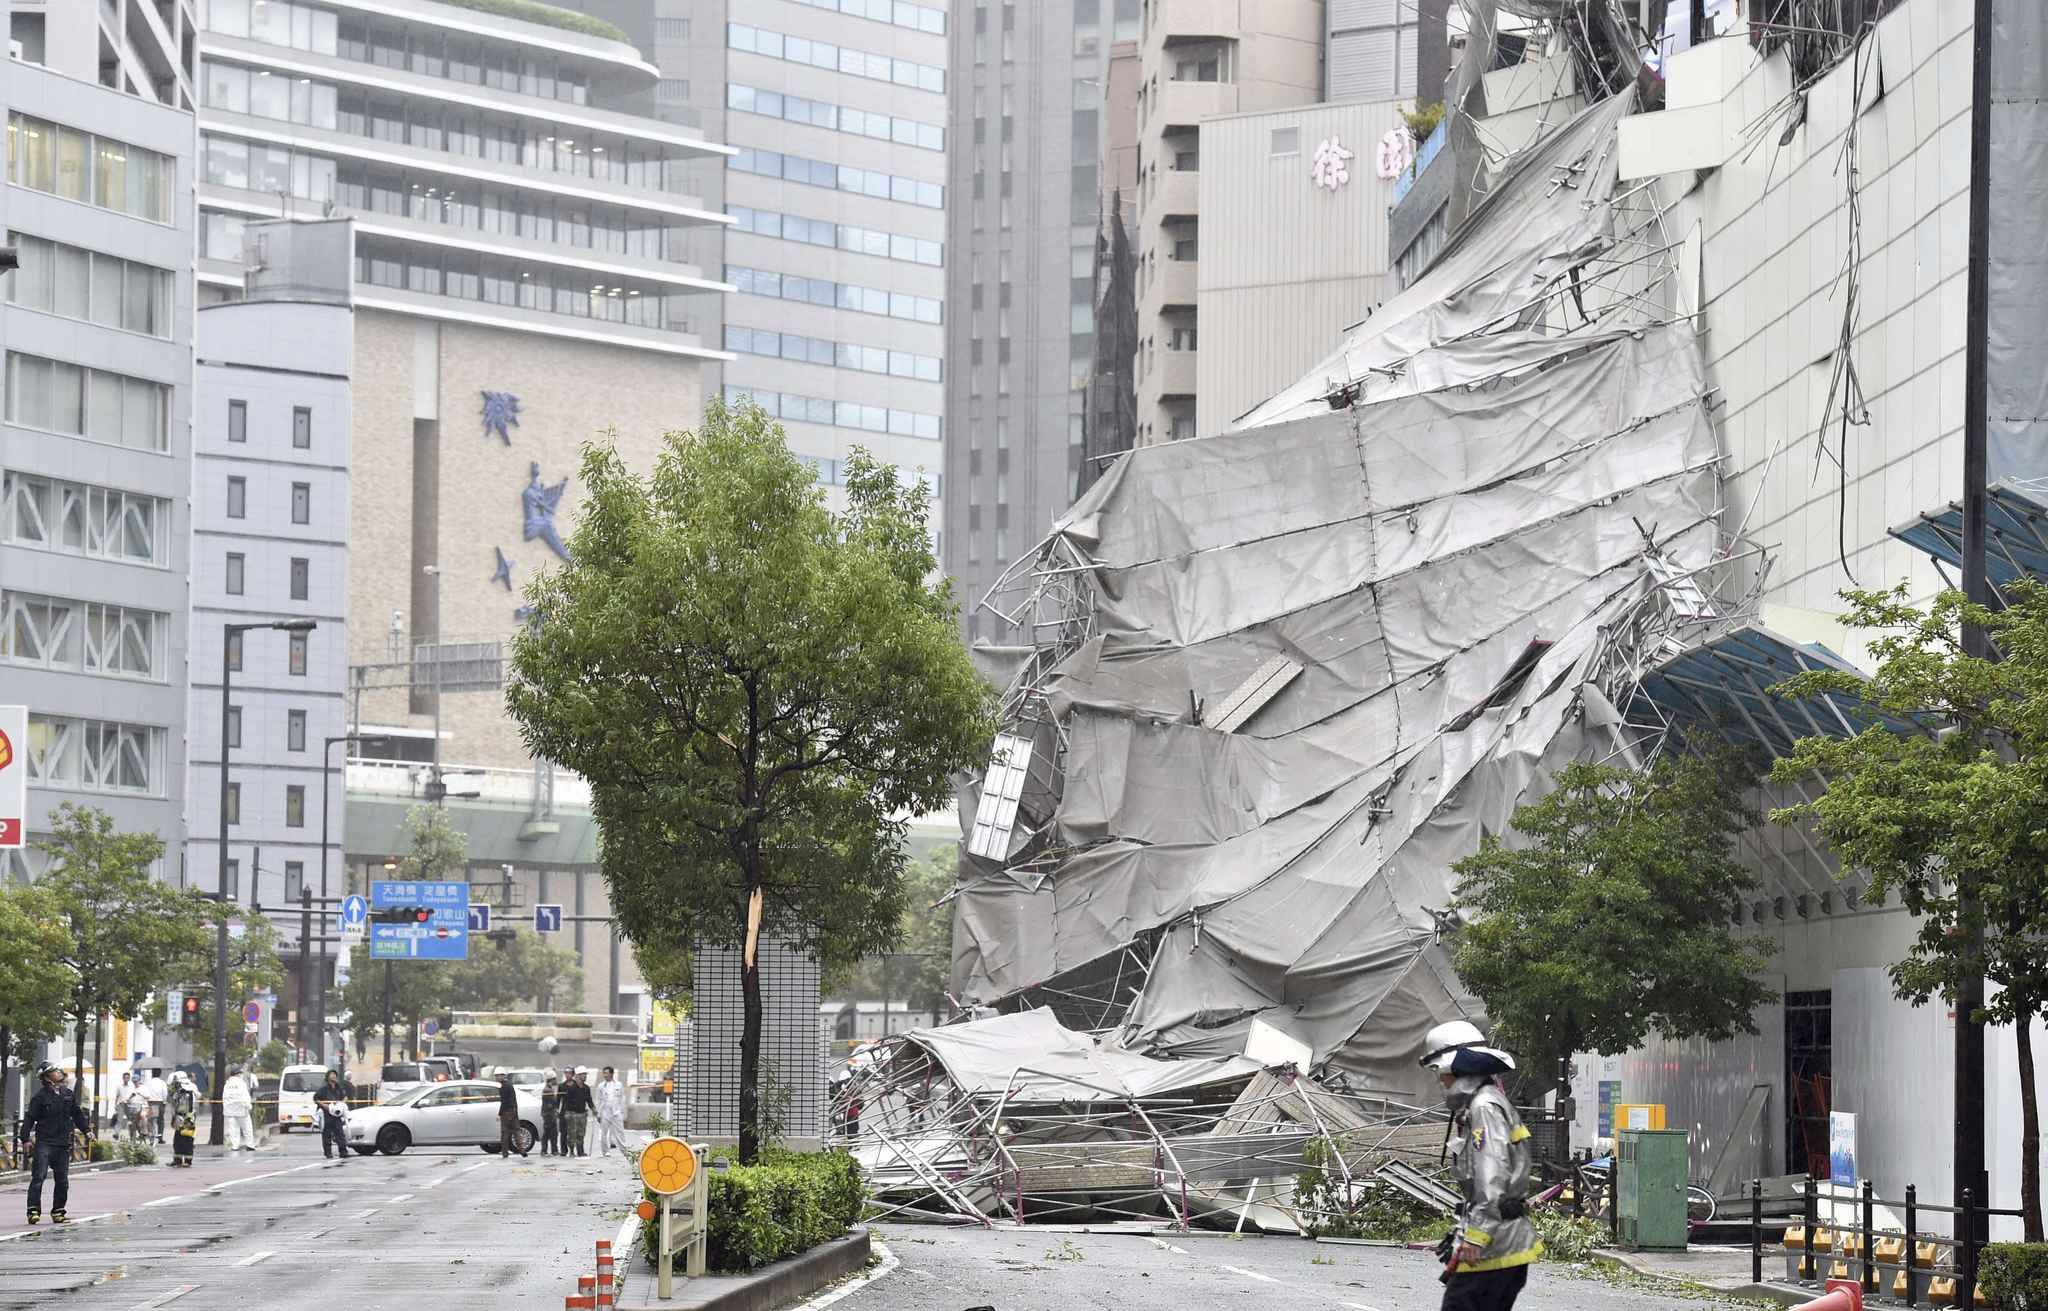 Damaged walls at construction site due to a strong wind triggered by Jebi is pictured in Osaka on Sep.4, 2018. Powerful typhoon made a landfall on Tokushima Prefecture in noon and expected to proceed to the Sea of Japan. Violent winds, high waves and heavy rains are forecasted in wide area of Japan till next day.